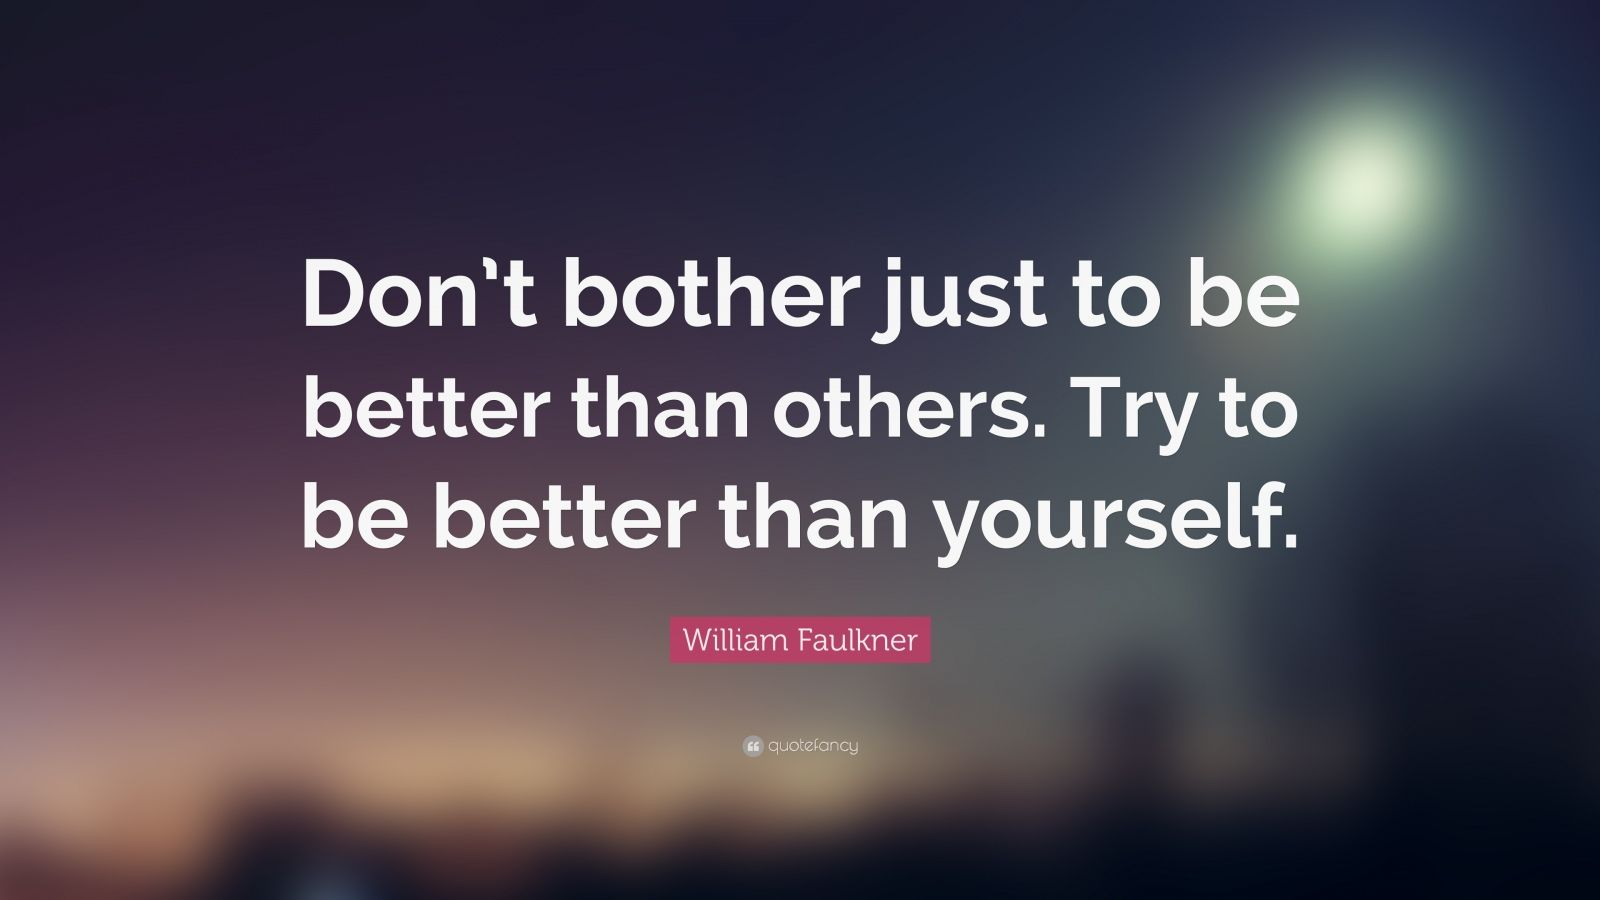 "Quotes About Trying: ""Don't bother just to be better than others. Try to be better than yourself."" — William Faulkner"